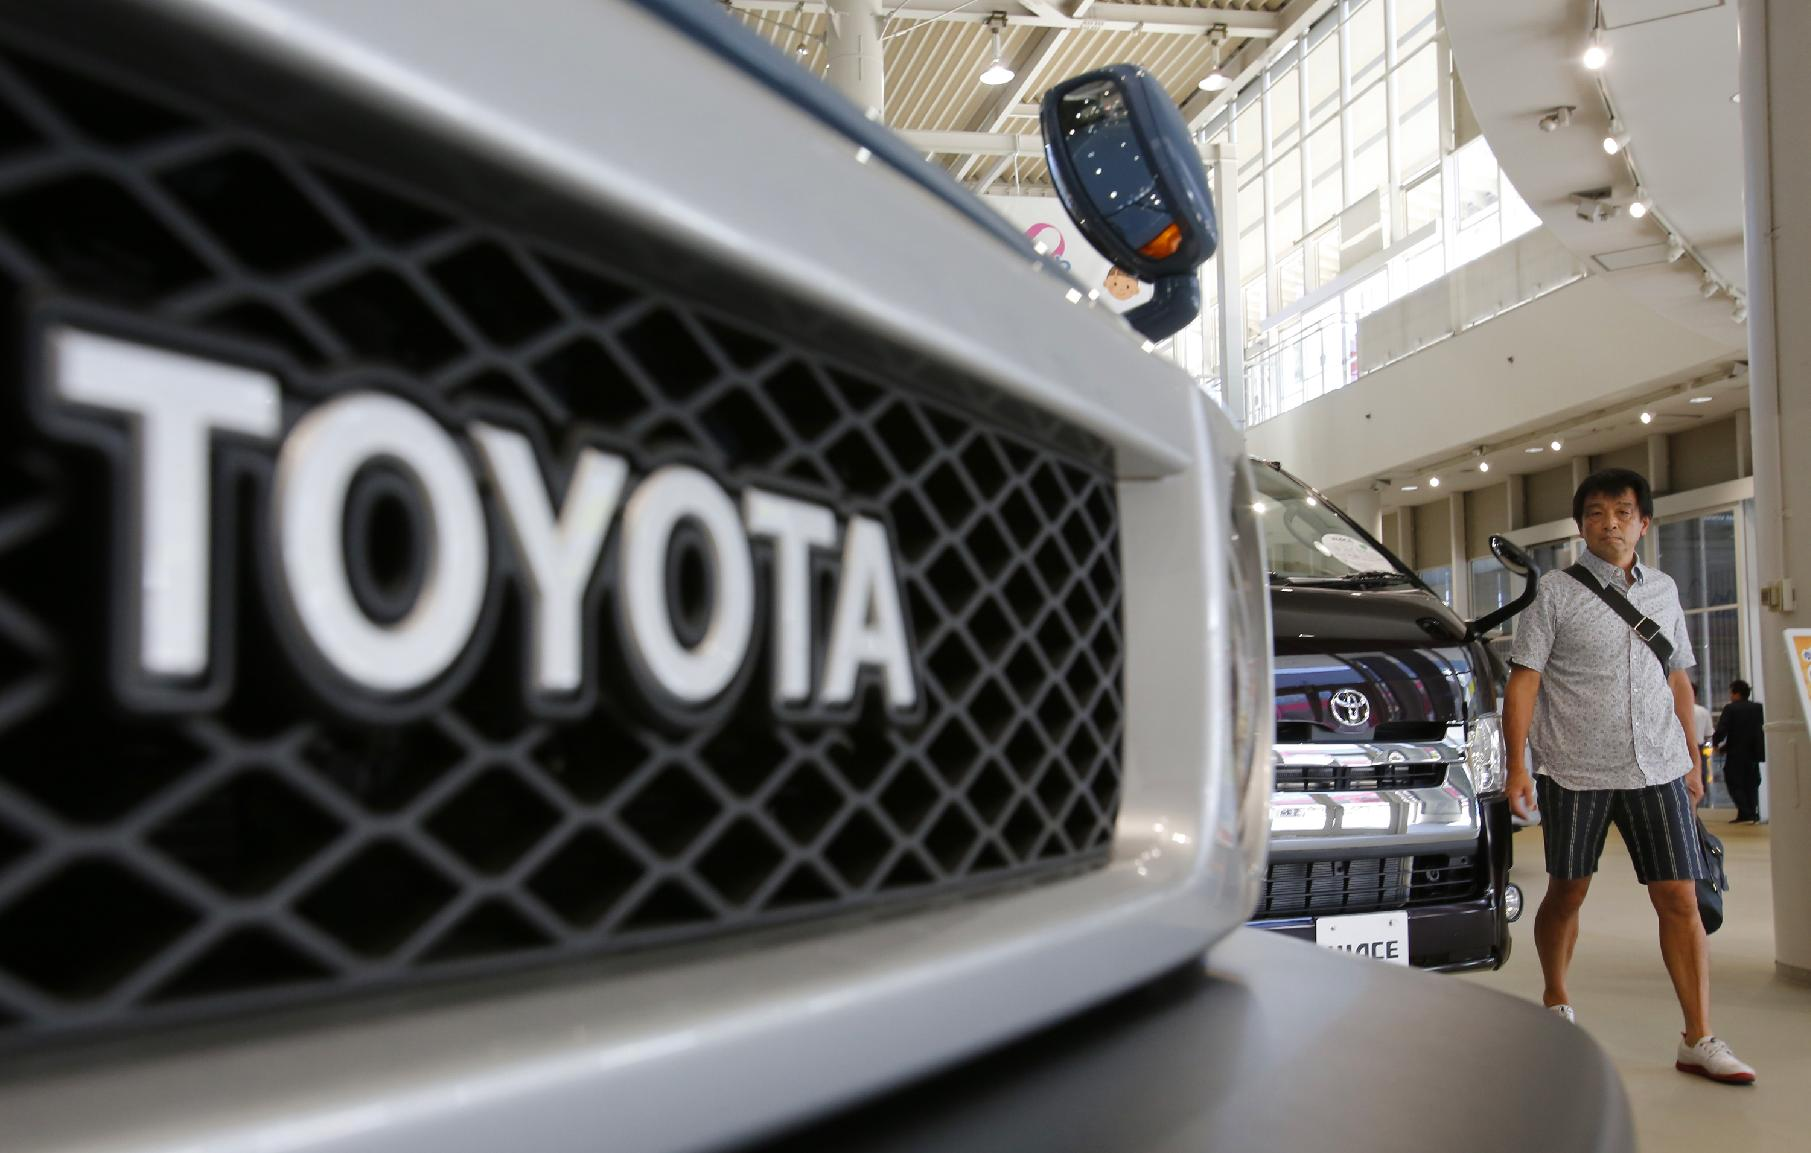 A visitor walks around a Toyota showroom in Tokyo, Tuesday, Aug. 5, 2014. Toyota Motor Corp. reported a better-than-expected rise in quarterly profit as vehicle sales grew in North America and Europe, offsetting a drop in Japan. (AP Photo/Shizuo Kambayashi)